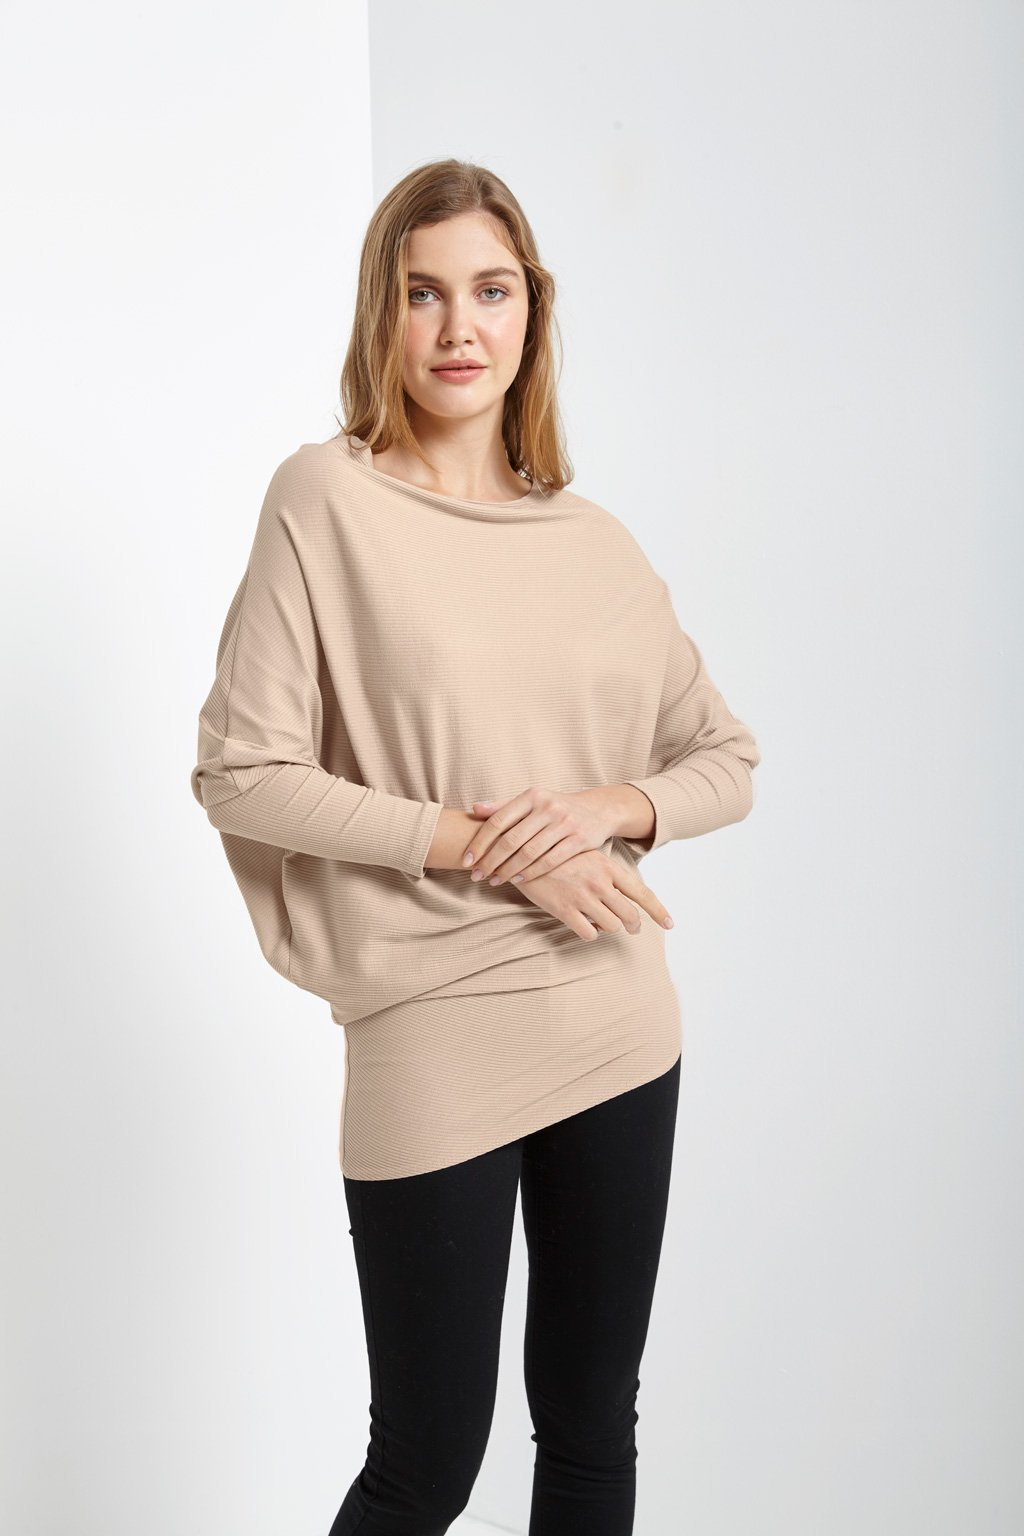 Poshsquare Tops S / Taupe Ribbed Asymmetrical Sweater Top